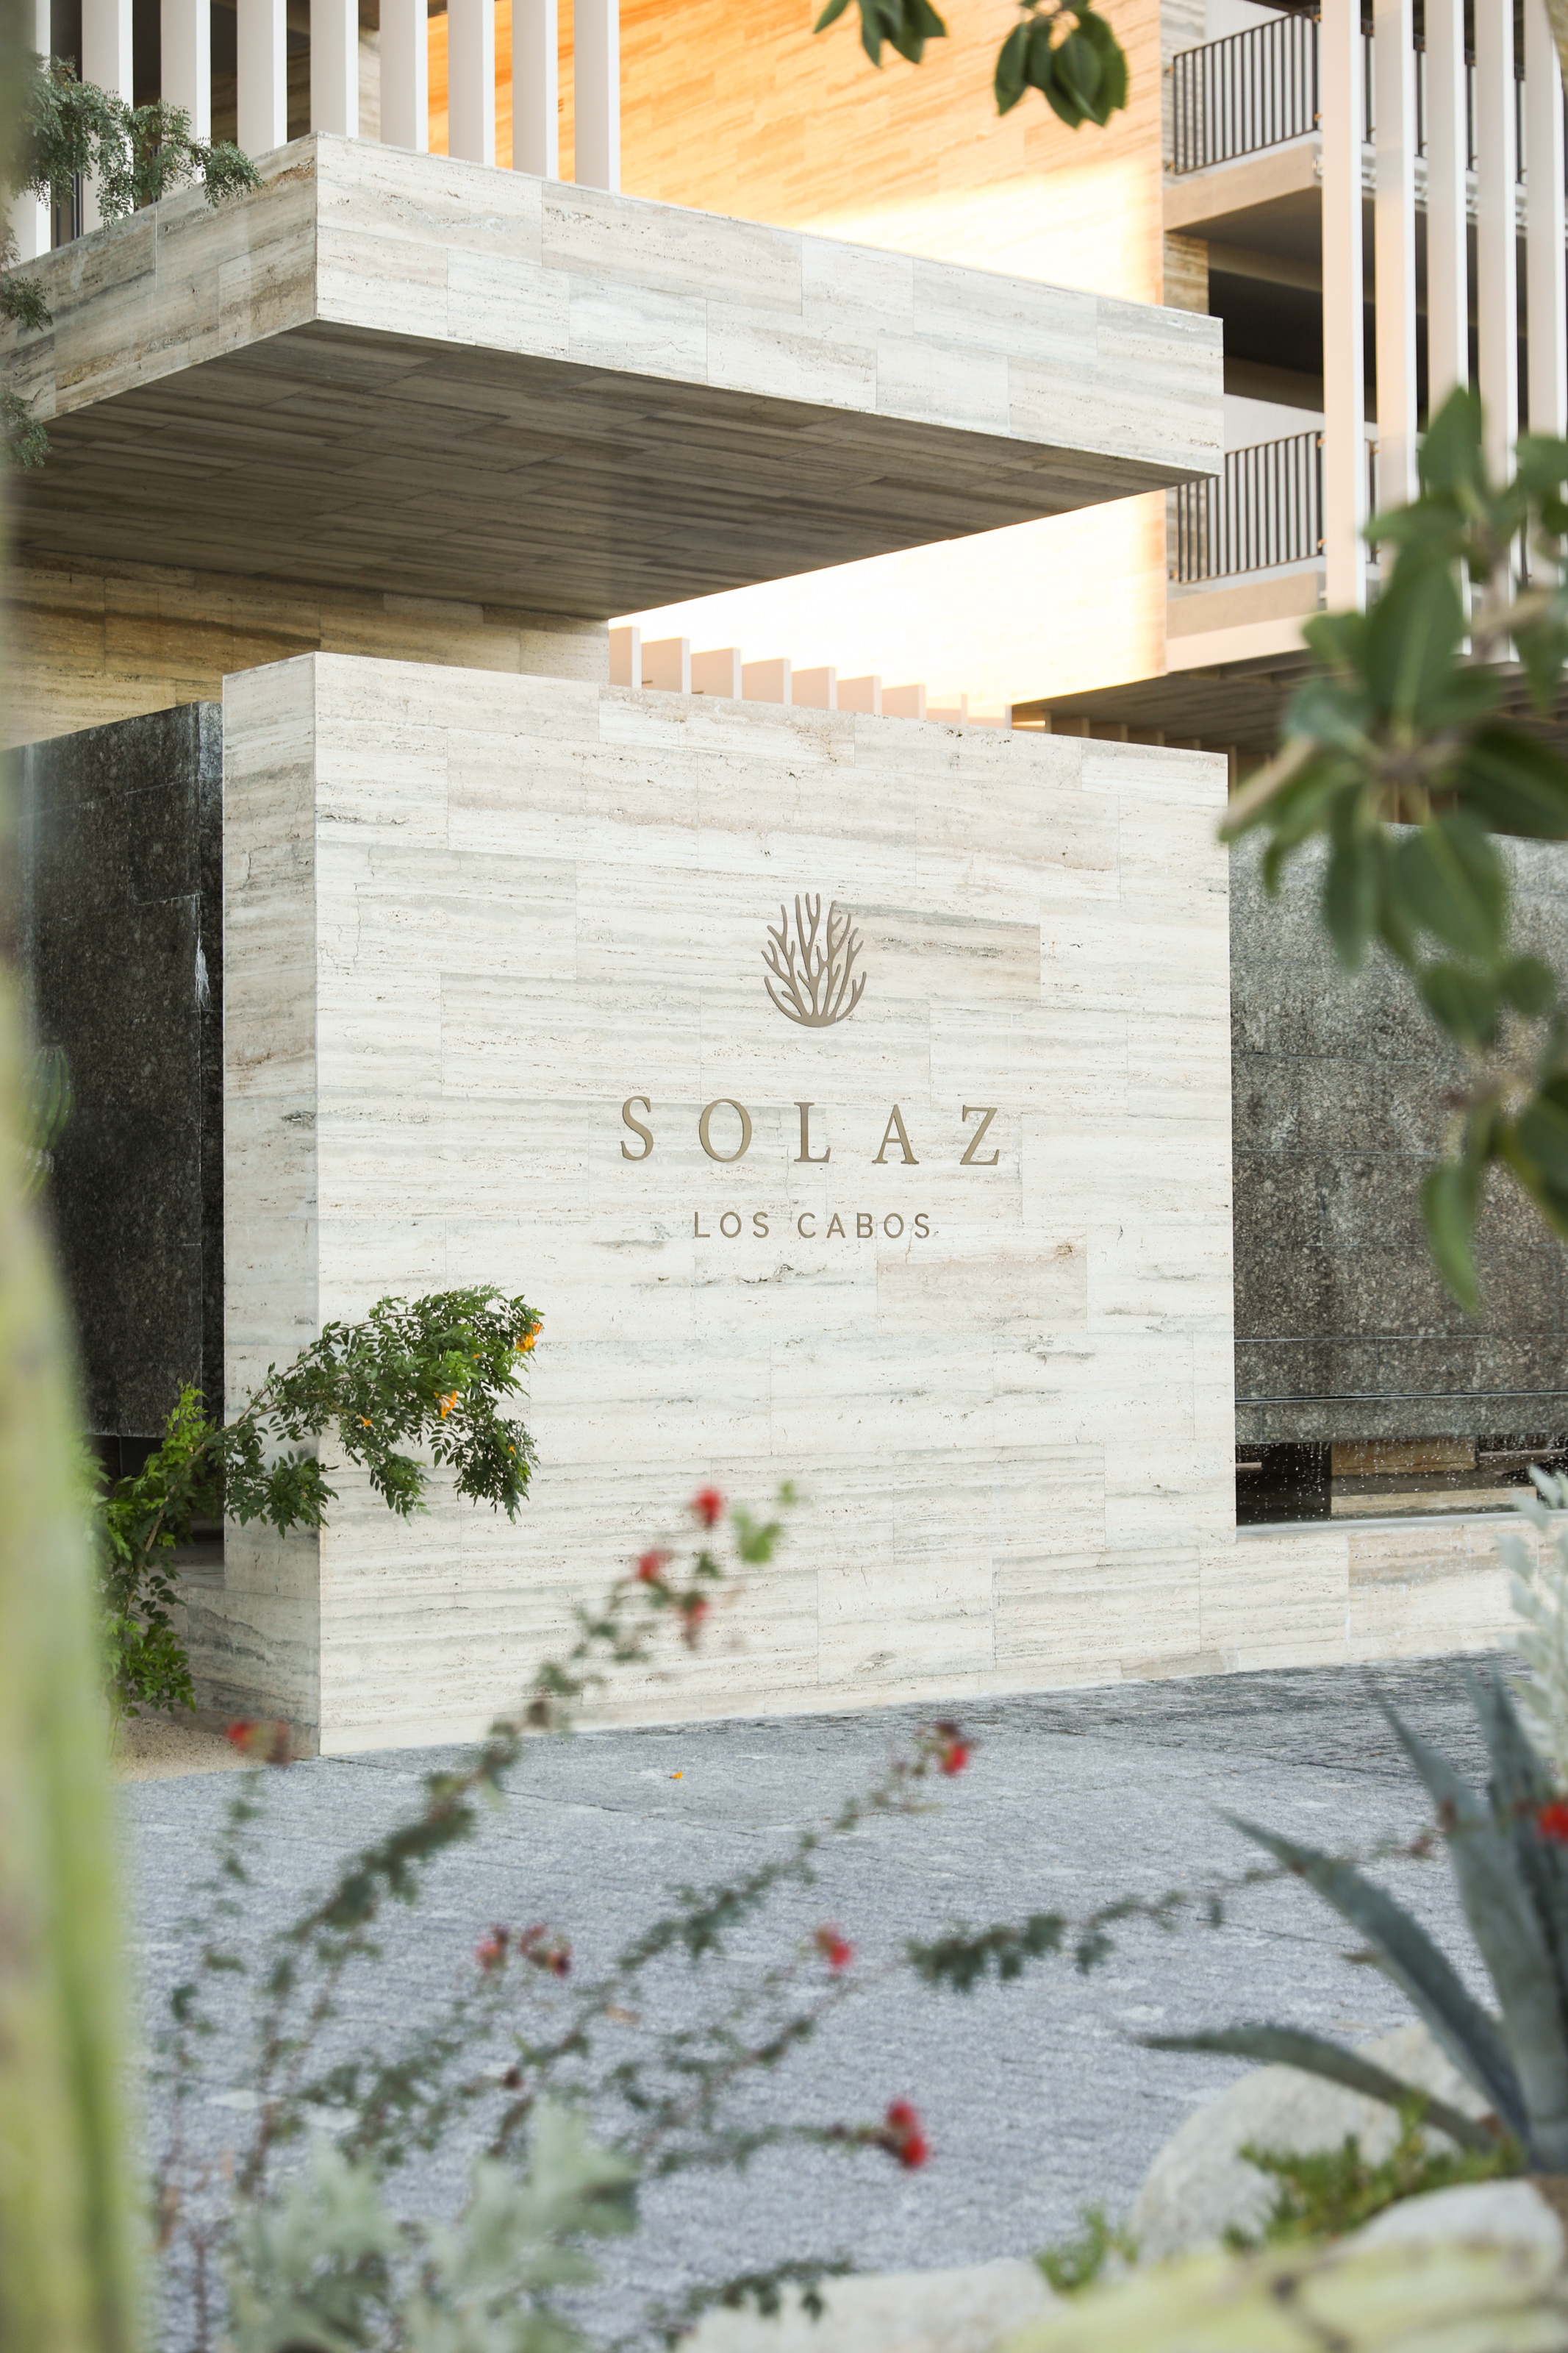 Solaz Los Cabos. Home to Engage!18. Photo by Ben Finch ©.